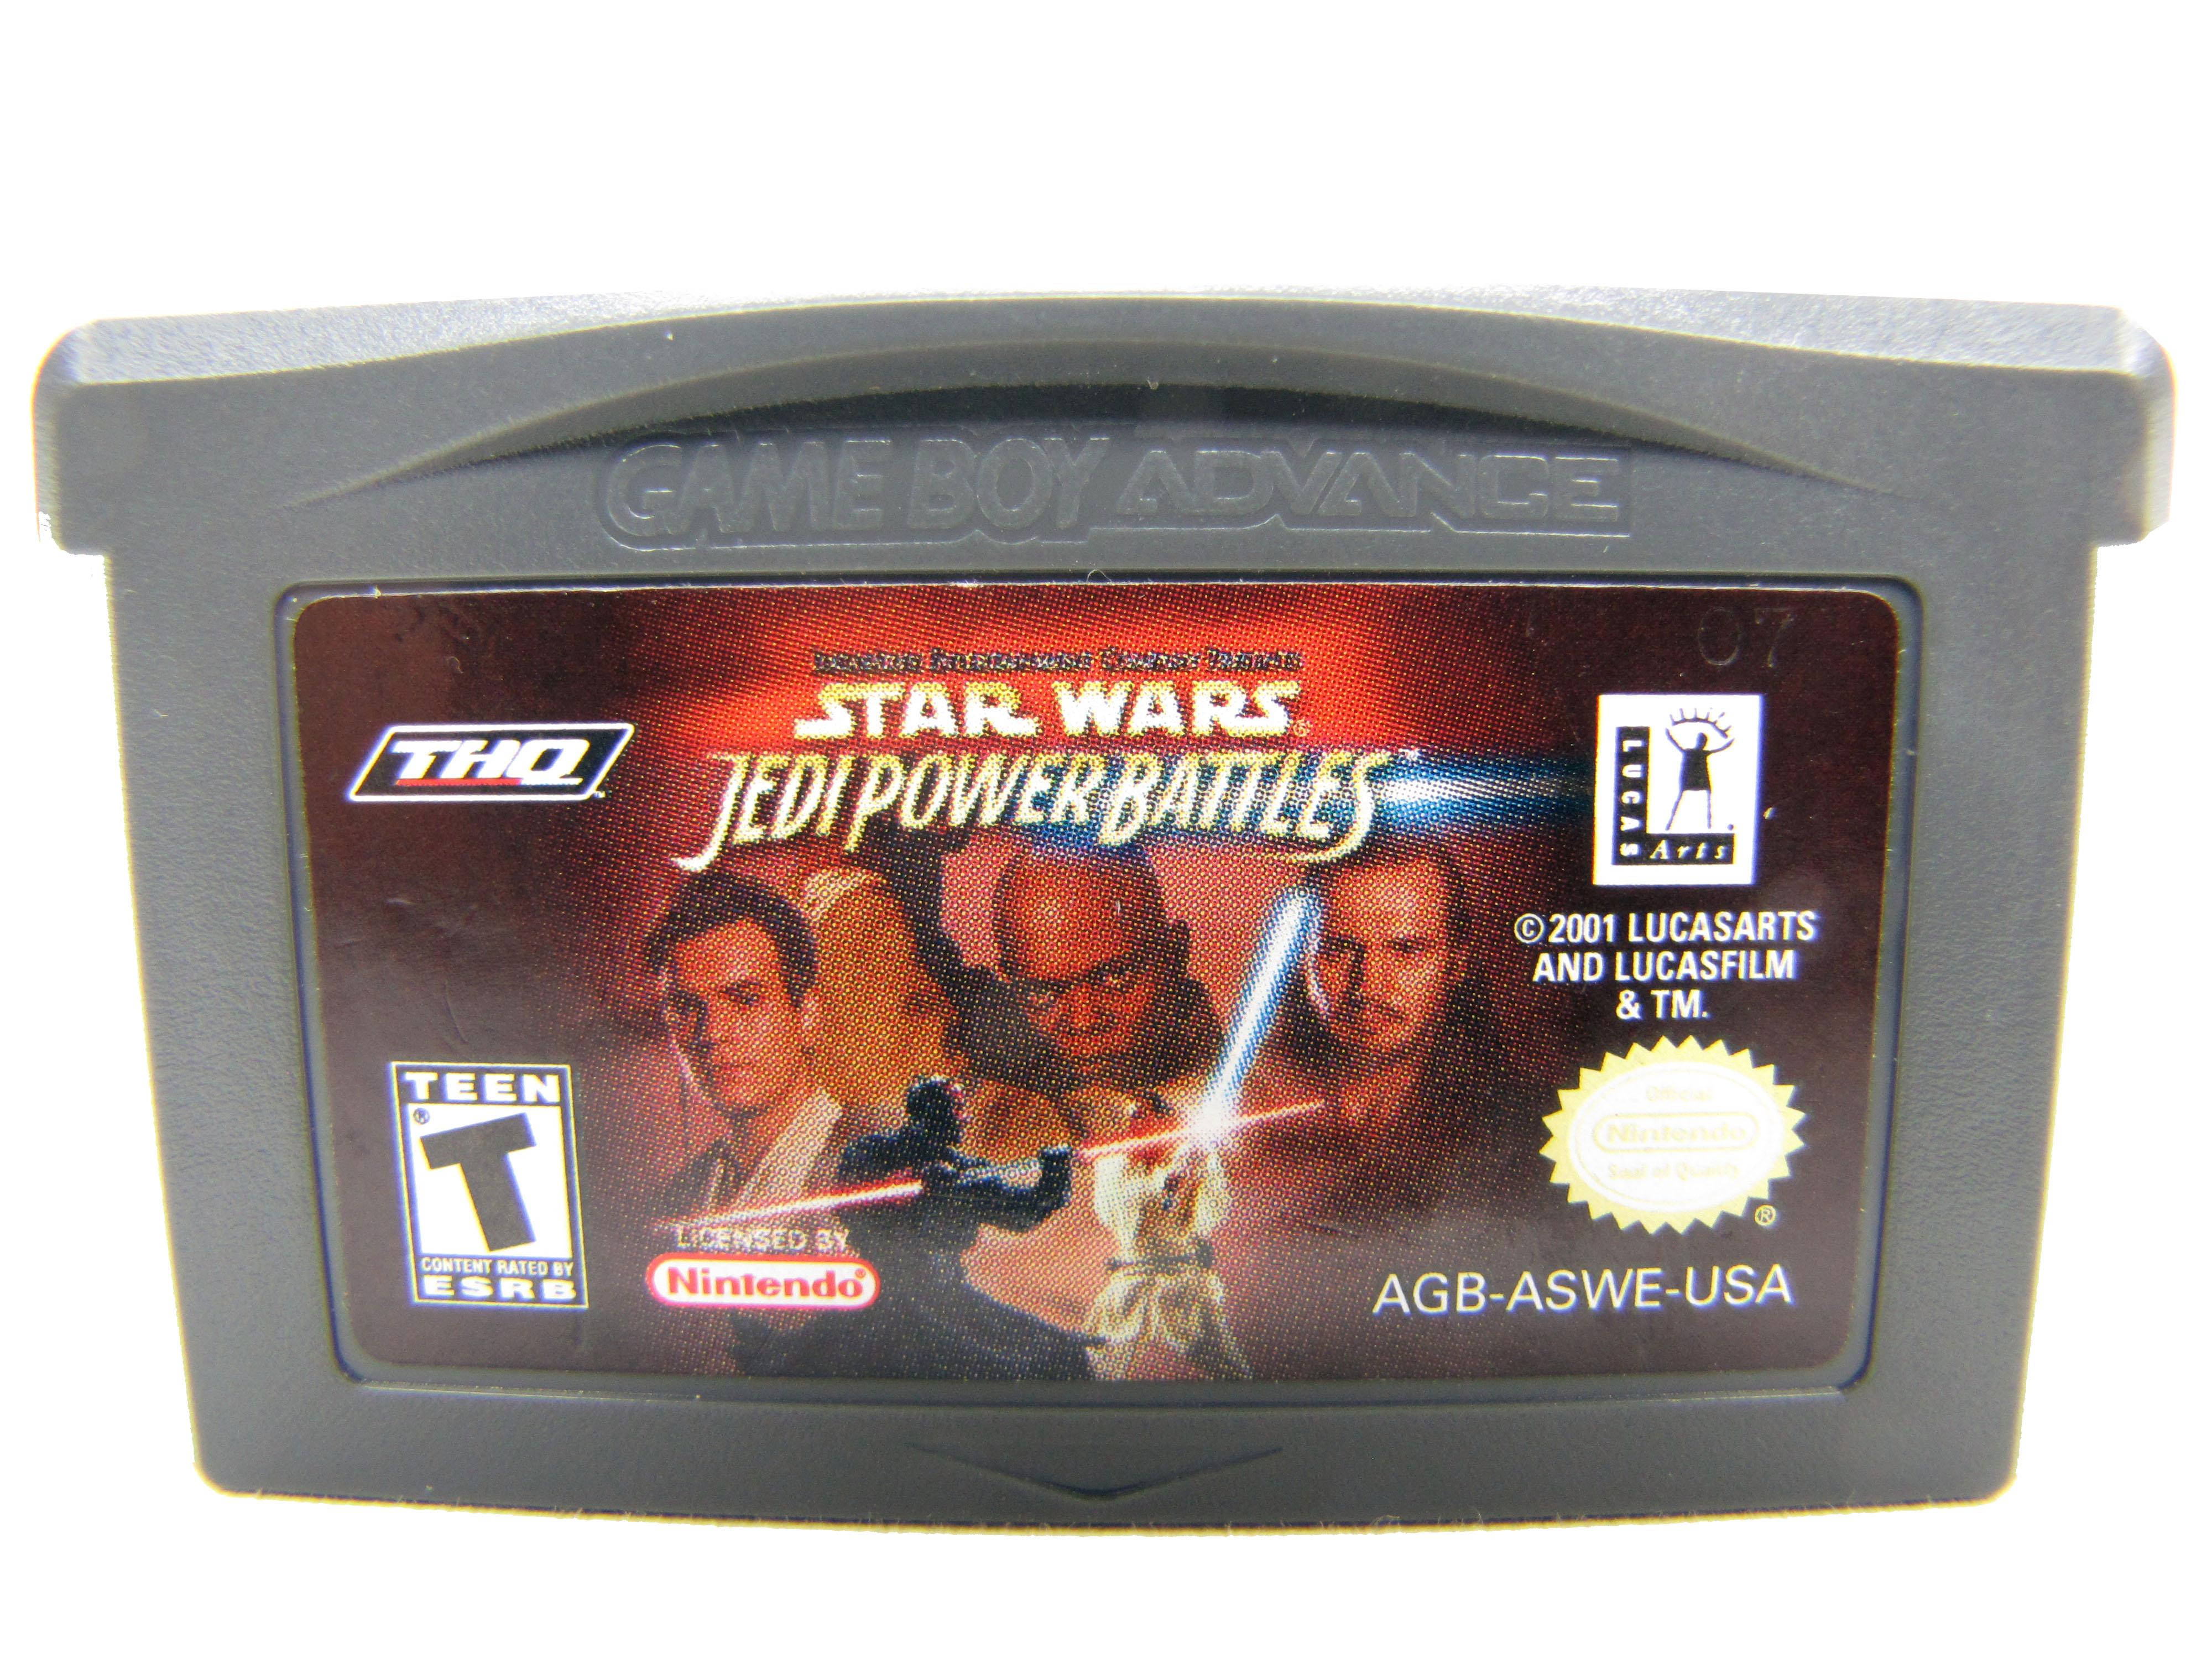 Game Boy Advance Star Wars: Jedi Power Battles - 2001